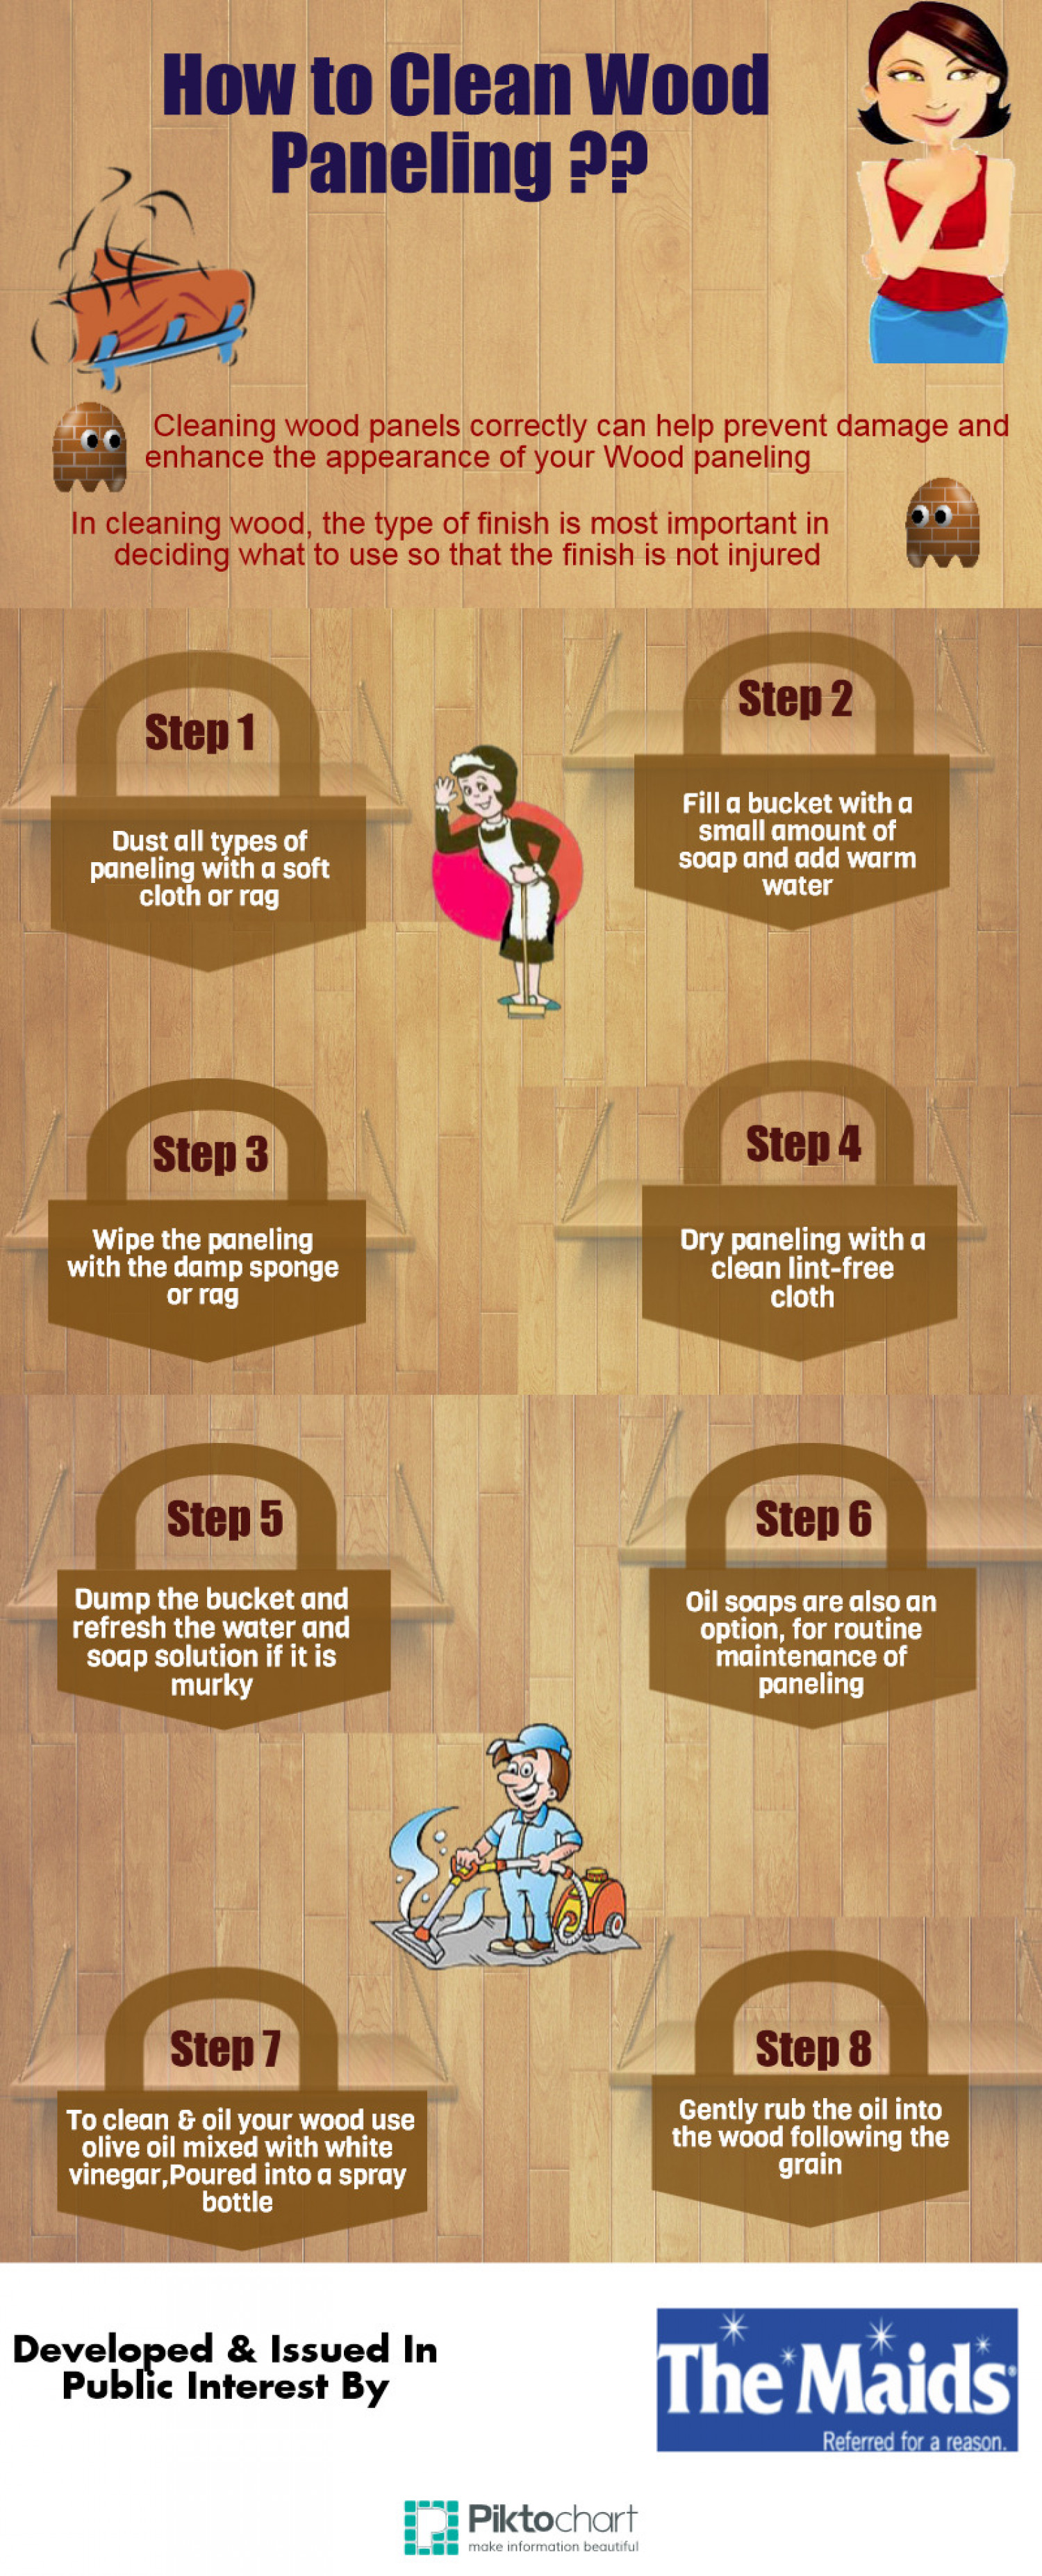 How To Clean Wood Paneling WB Designs - How To Clean Wood Paneling WB Designs